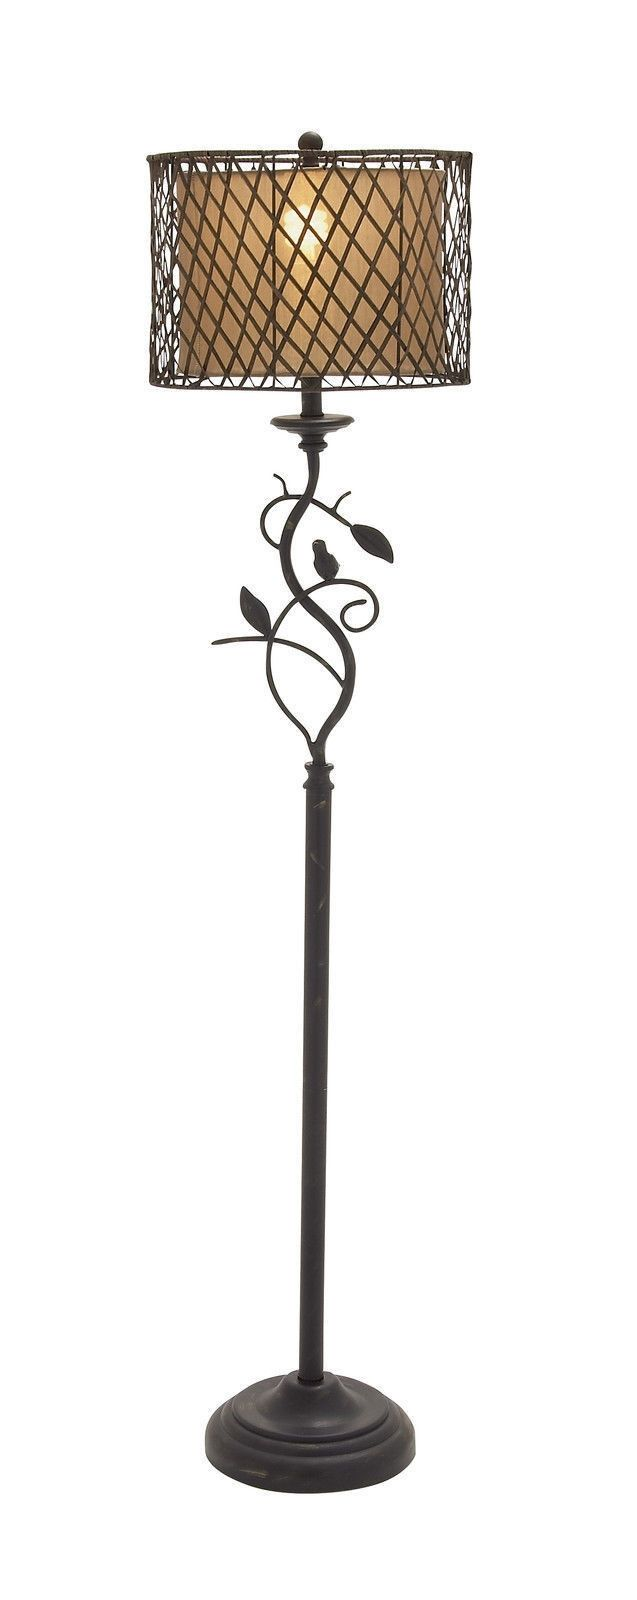 """61"""" Tall Floor Lamp Stand Open Netting Rattan Weave Paris French Style Bird Tree"""